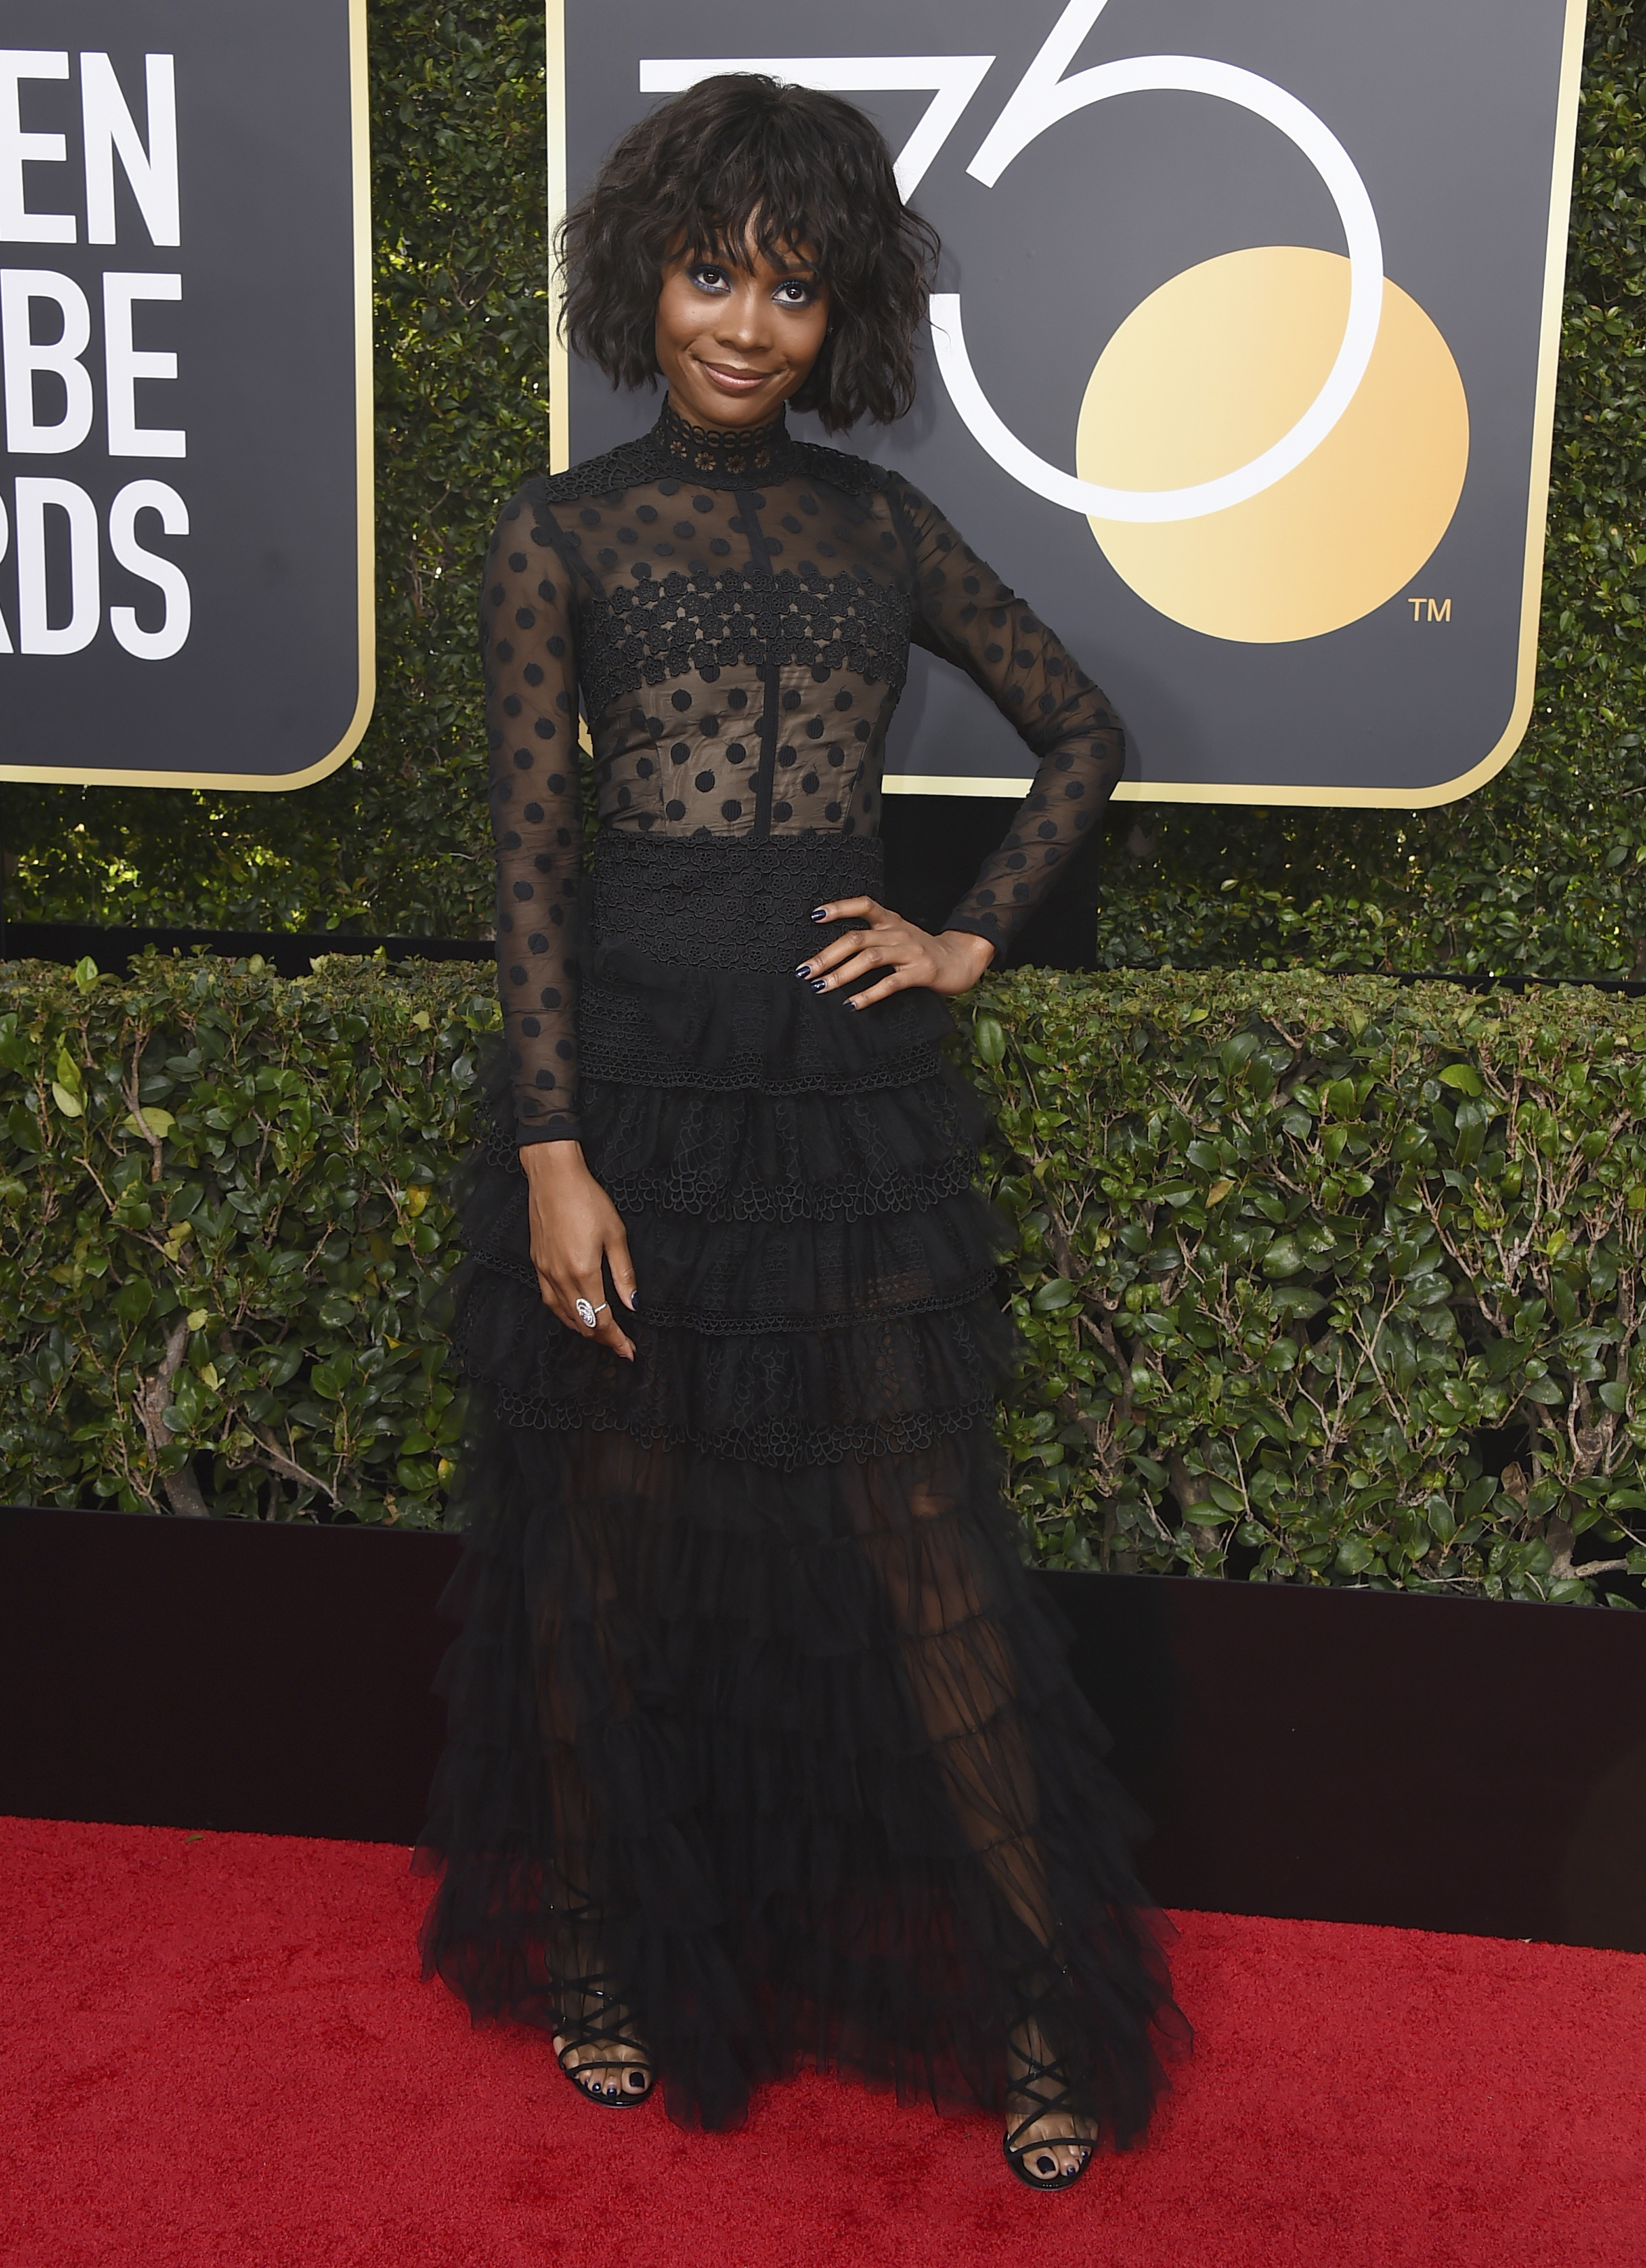 <div class='meta'><div class='origin-logo' data-origin='AP'></div><span class='caption-text' data-credit='Jordan Strauss/Invision/AP'>Zuri Hall arrives at the 75th annual Golden Globe Awards at the Beverly Hilton Hotel on Sunday, Jan. 7, 2018, in Beverly Hills, Calif.</span></div>